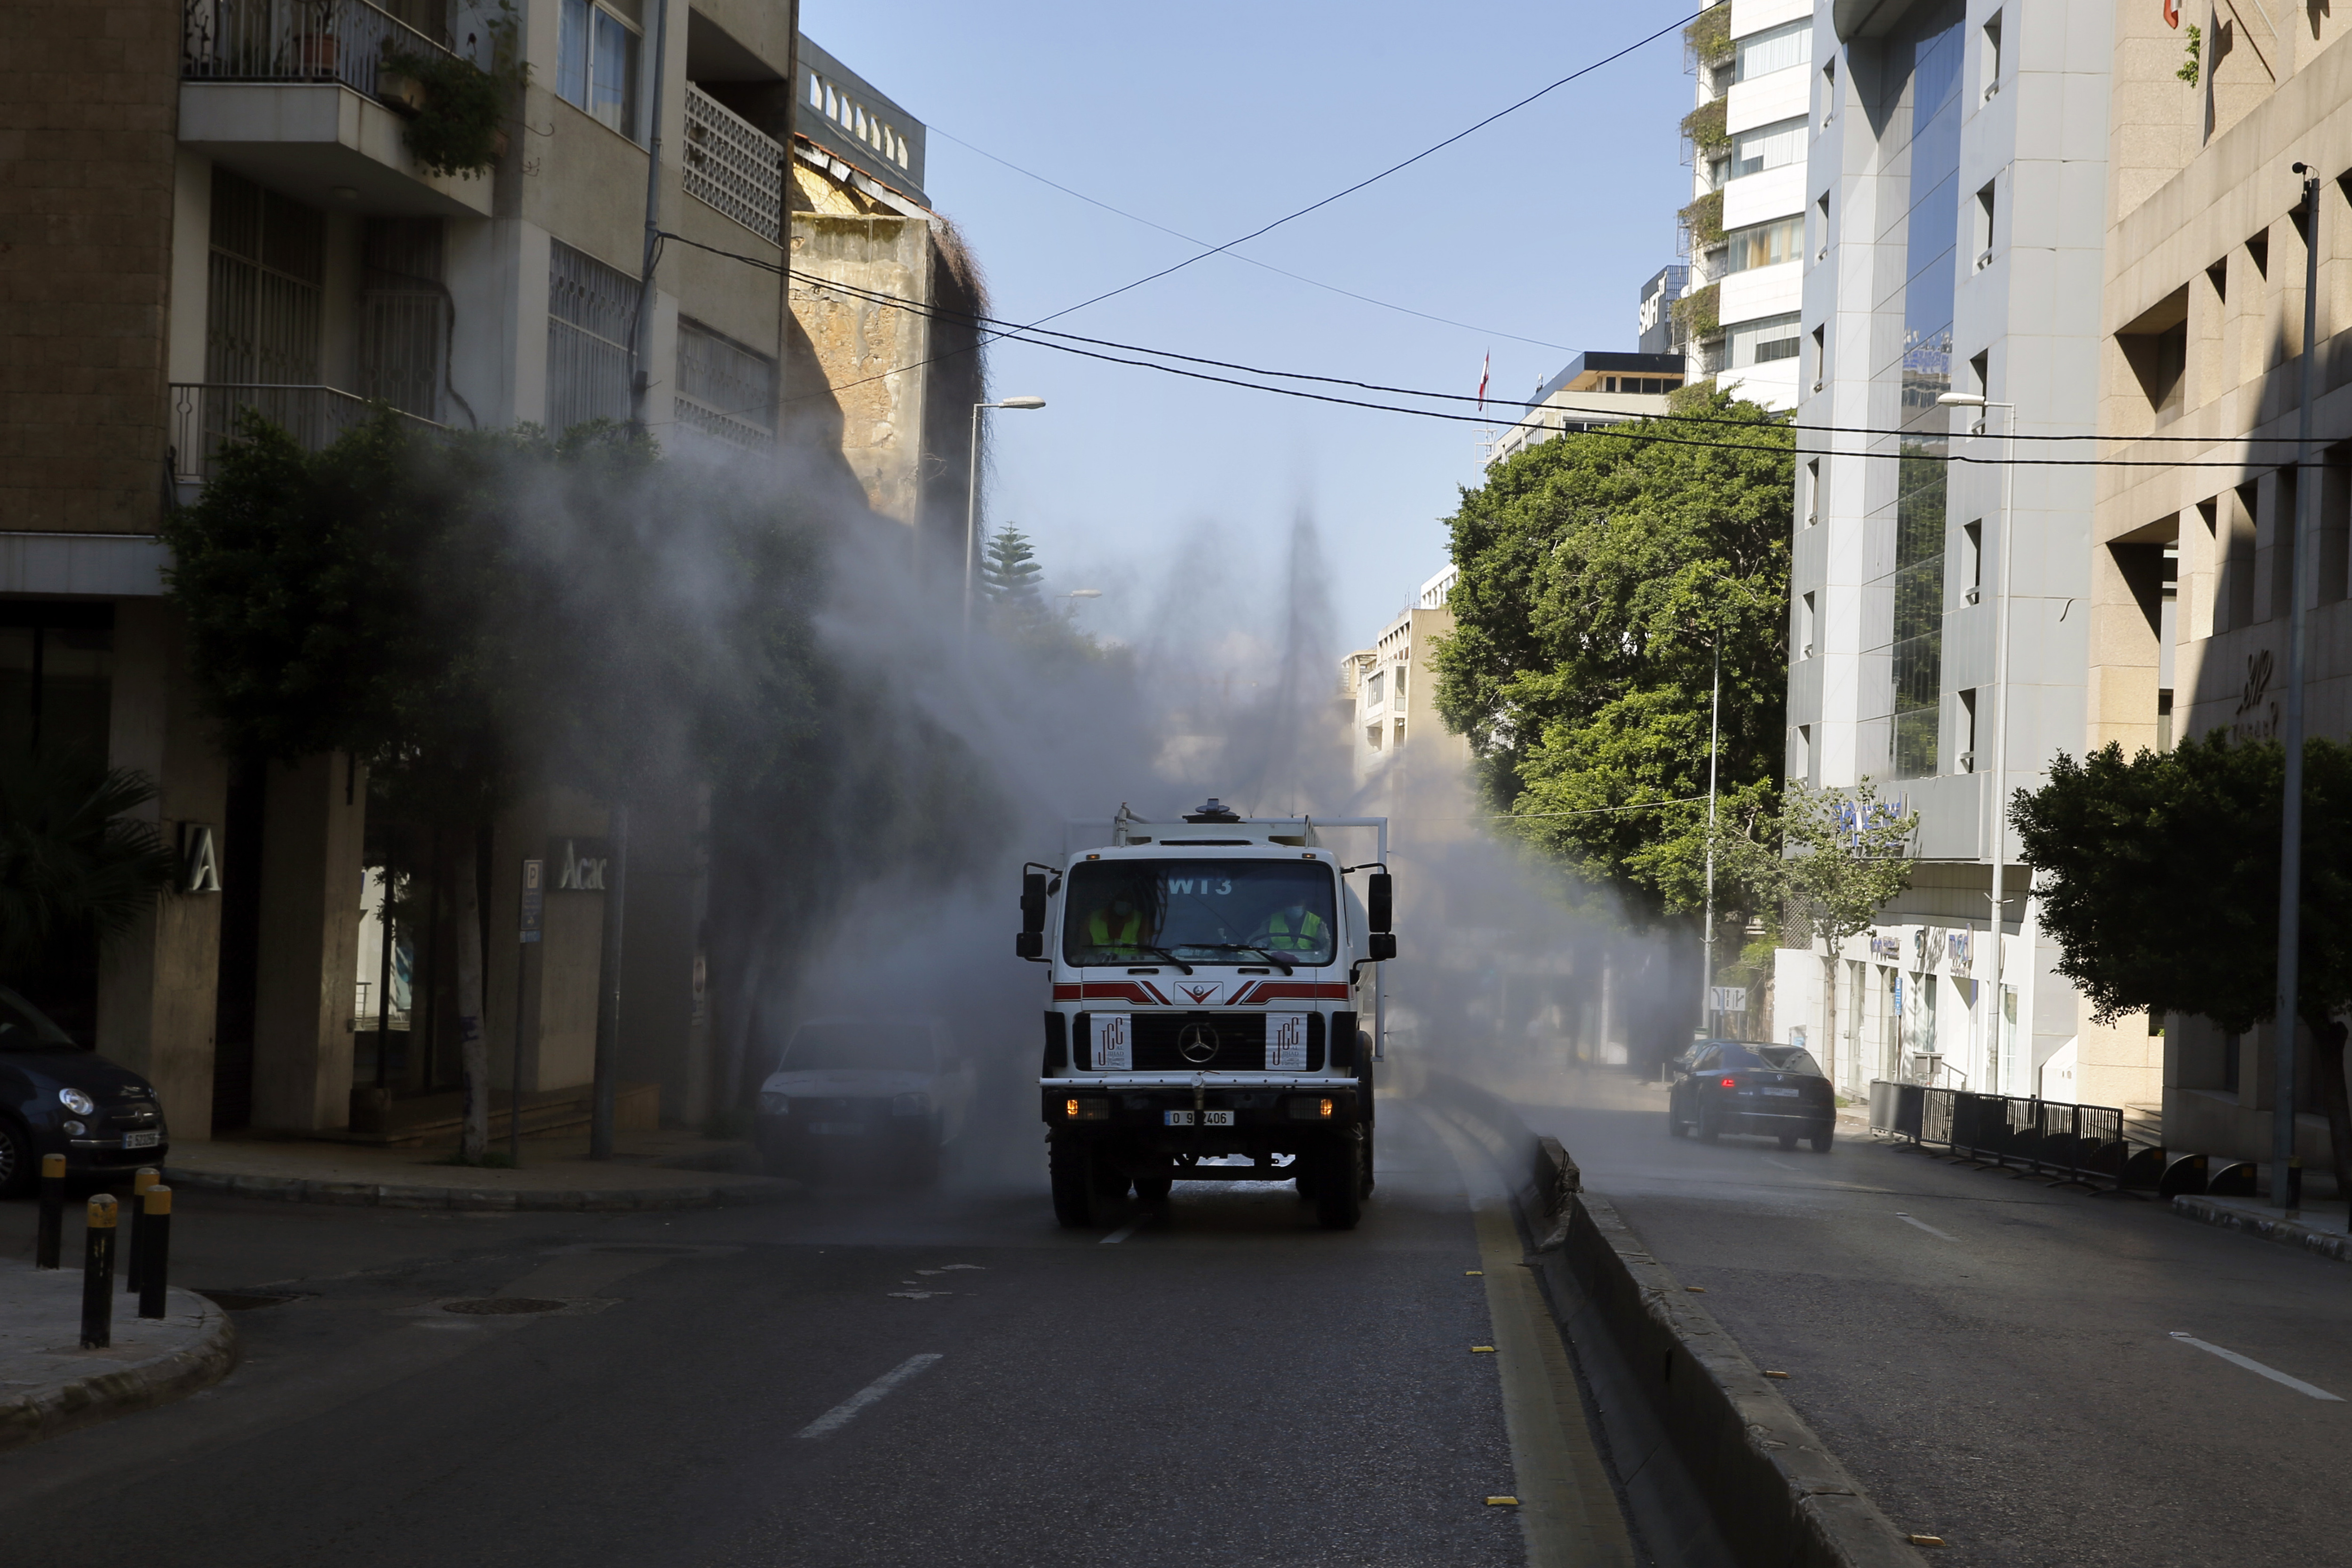 Virus now in Gaza, Syria, raising fears in vulnerable areas